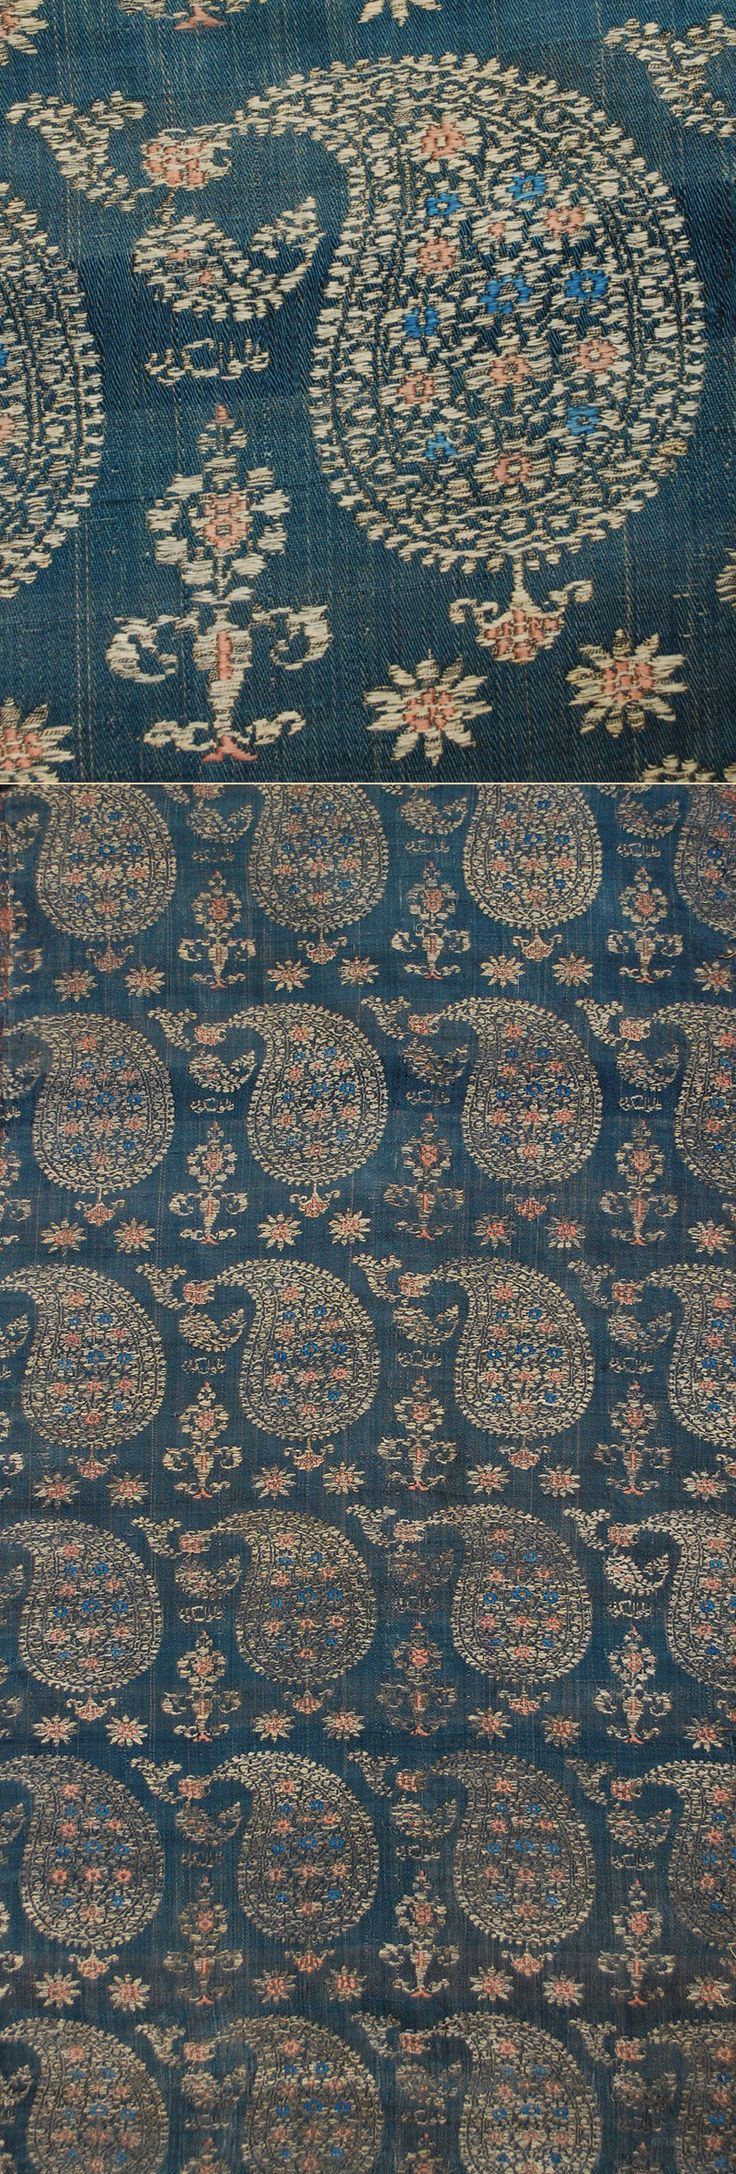 Antique Persian Textile. Silk Brocade with Silver Thread.  Safavi Dynasty  1501-1722 A.D Circa 1700